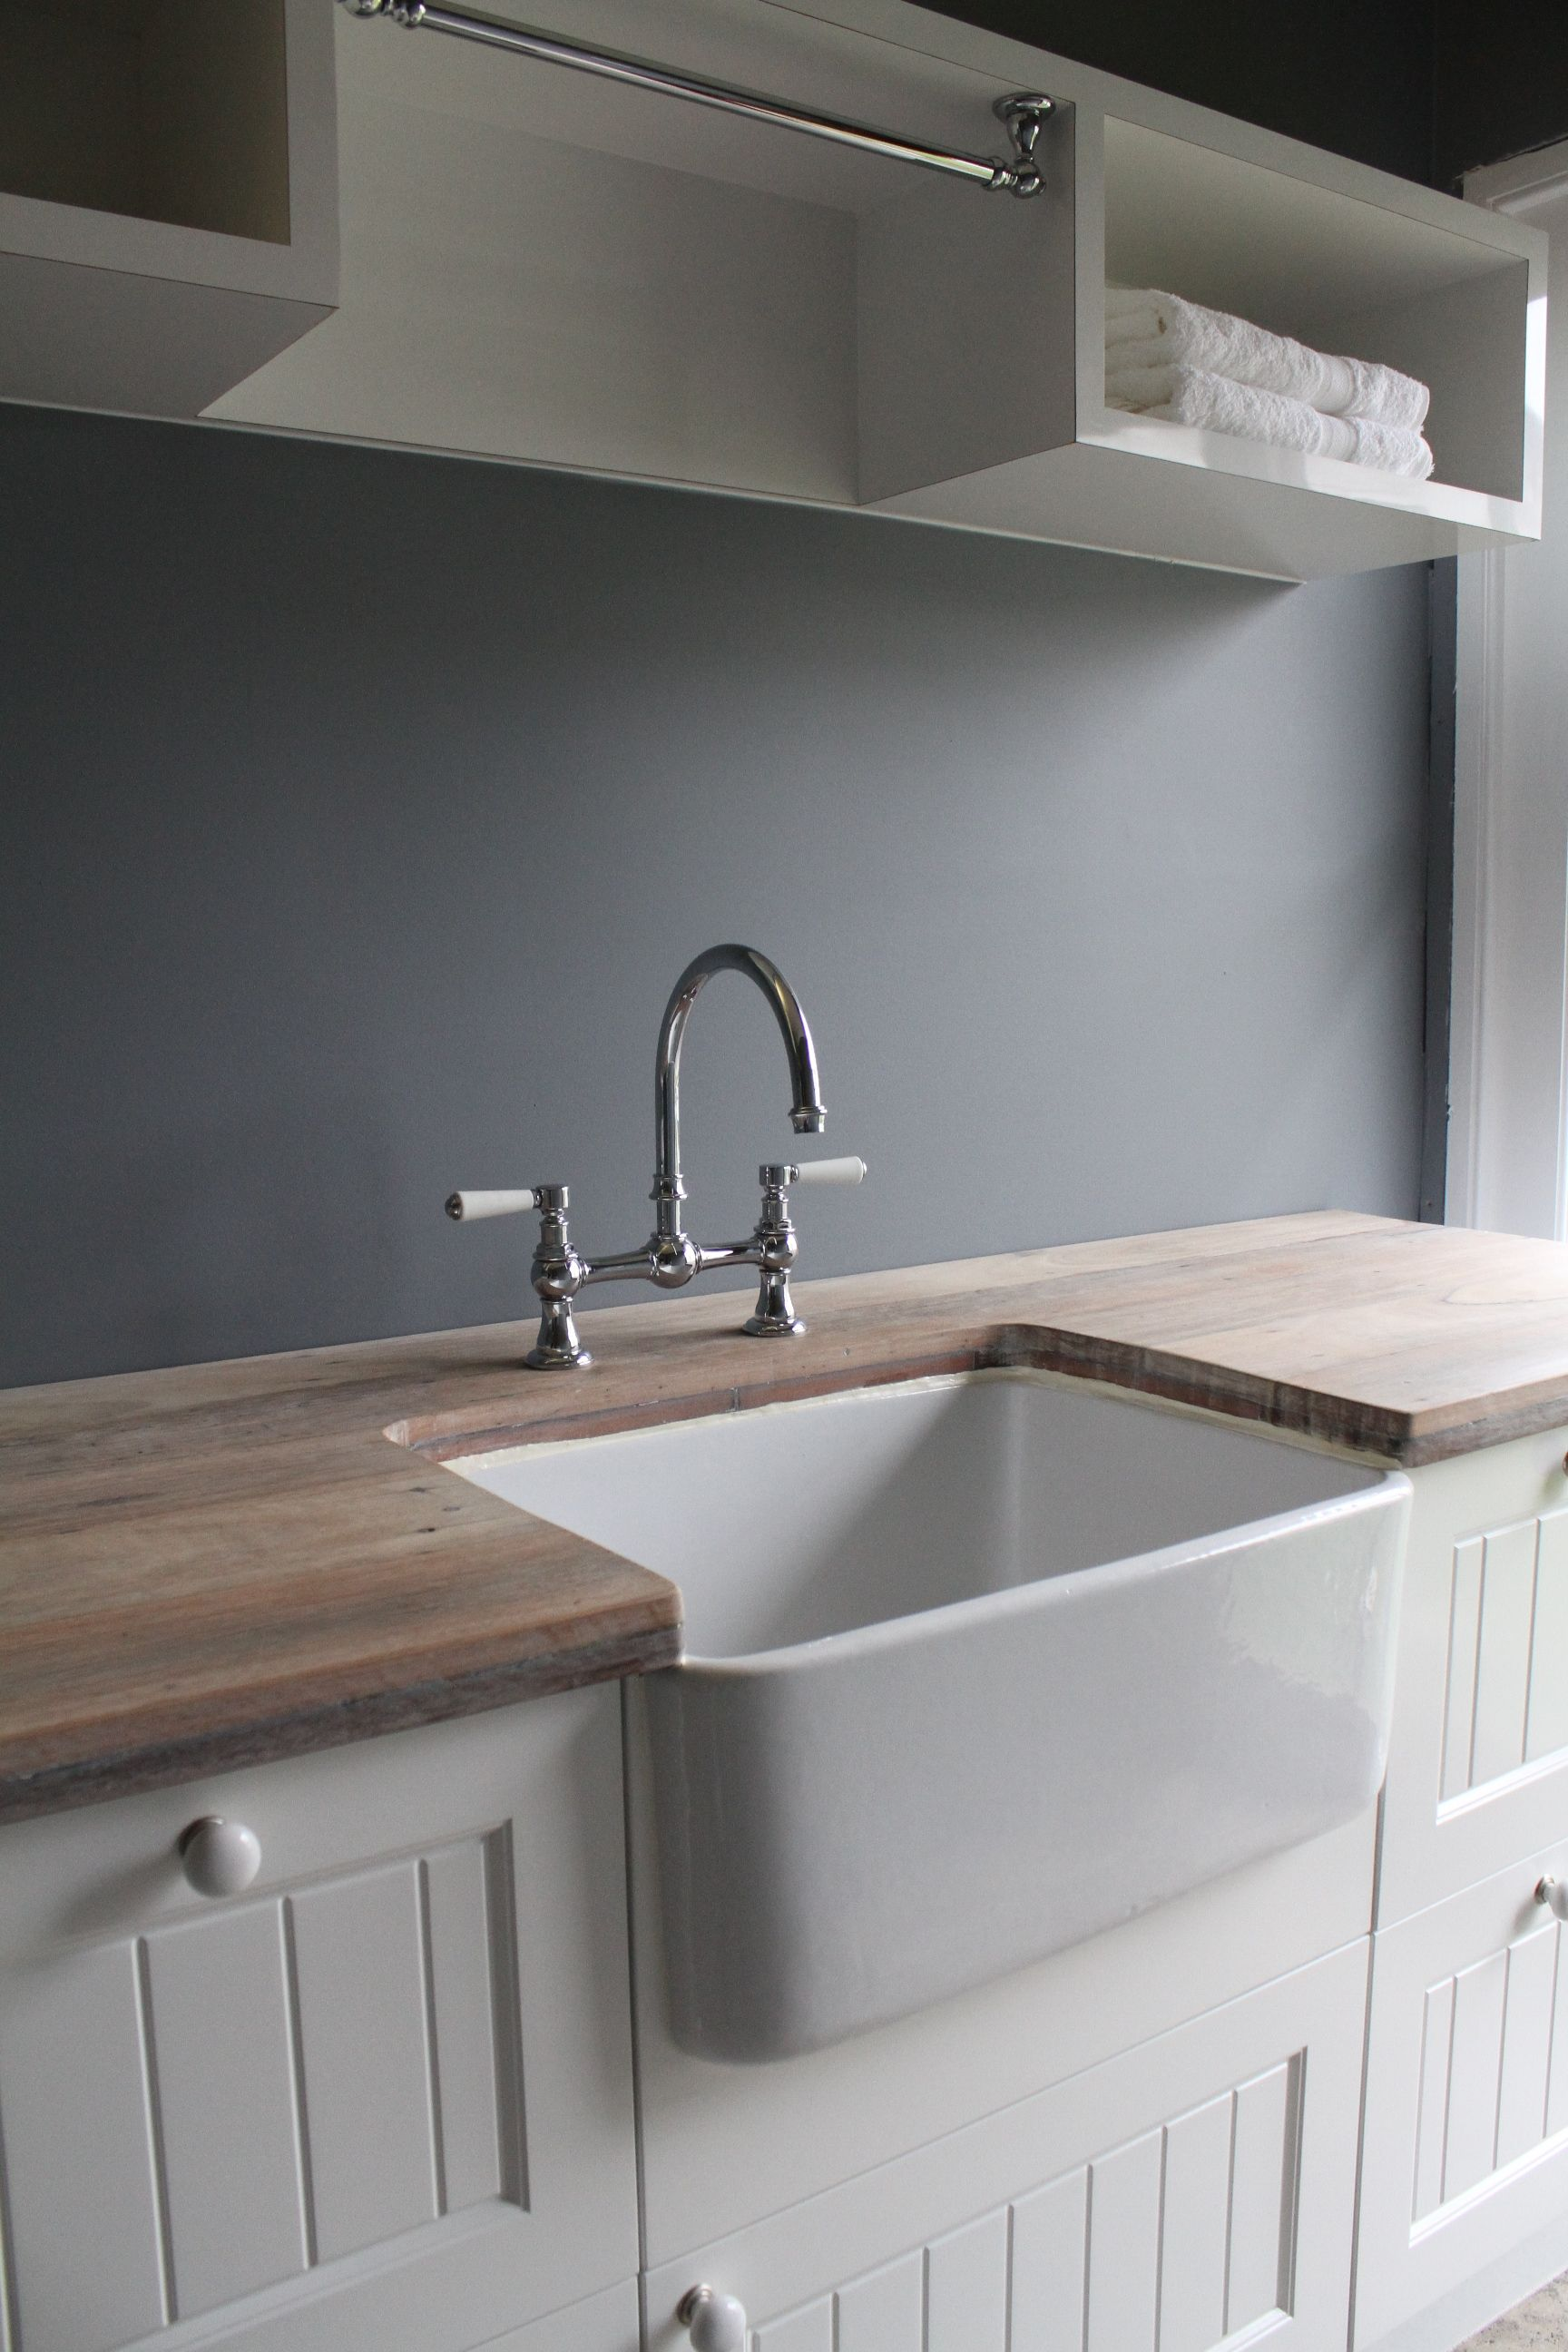 Kitchen Taps Online Australia Butler Laundry And Kitchen Sink Http Www